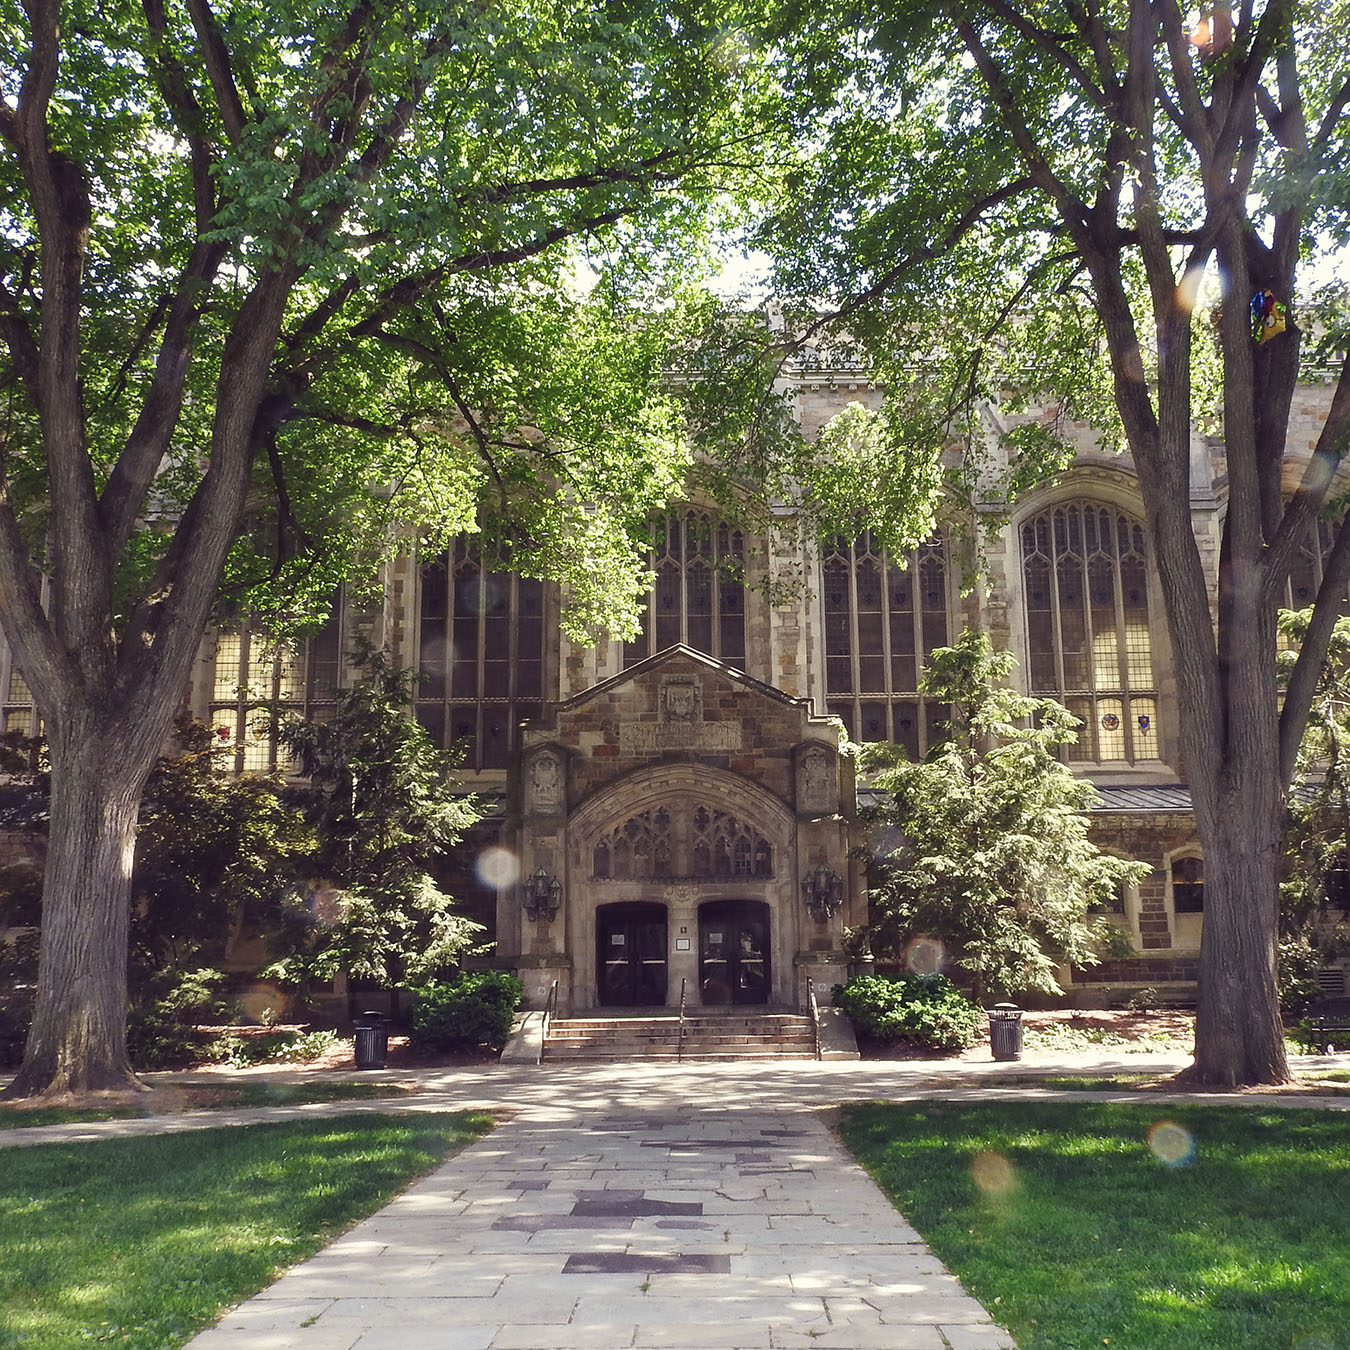 Law Quad, Ann Arbor